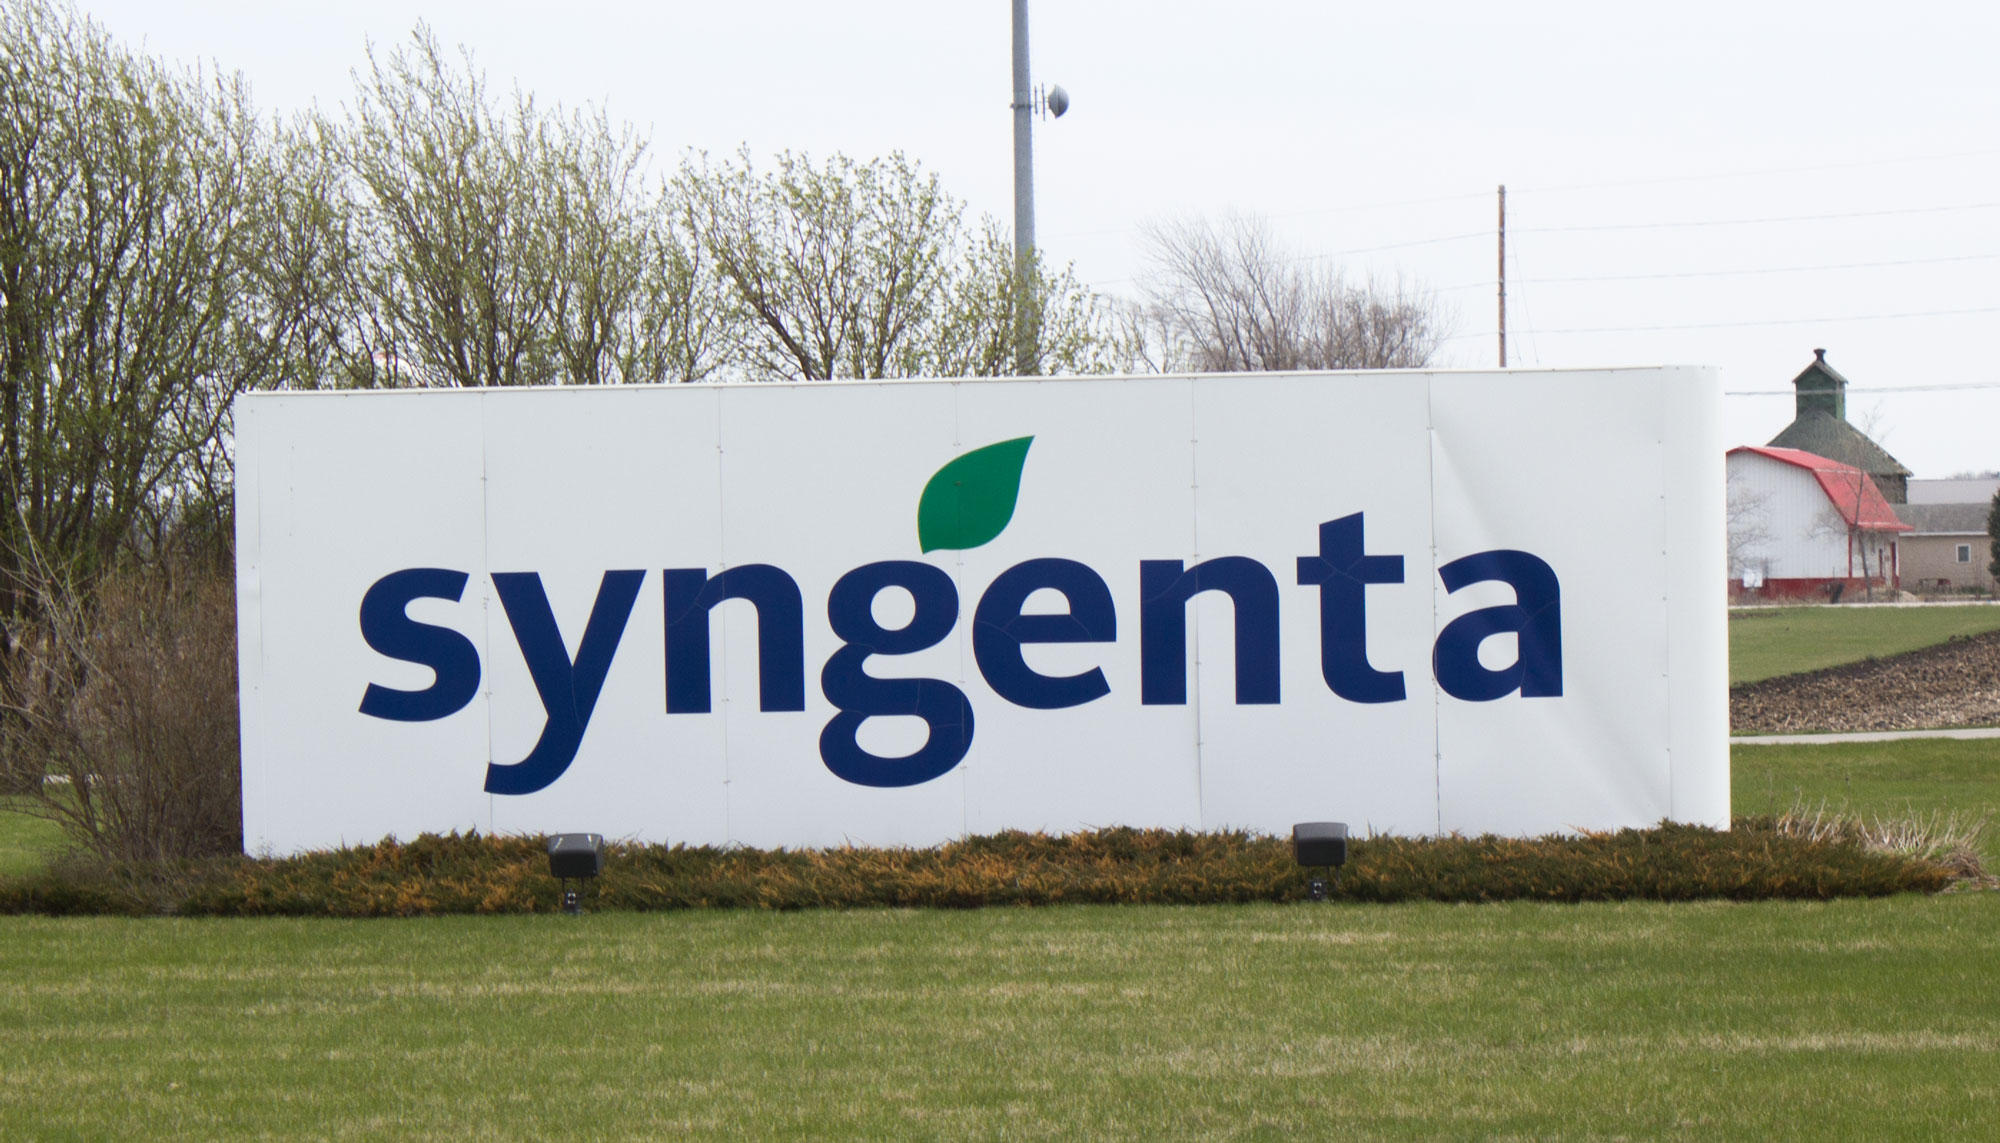 Farmers, Syngenta reach settlement over Agrisure Viptera corn seed